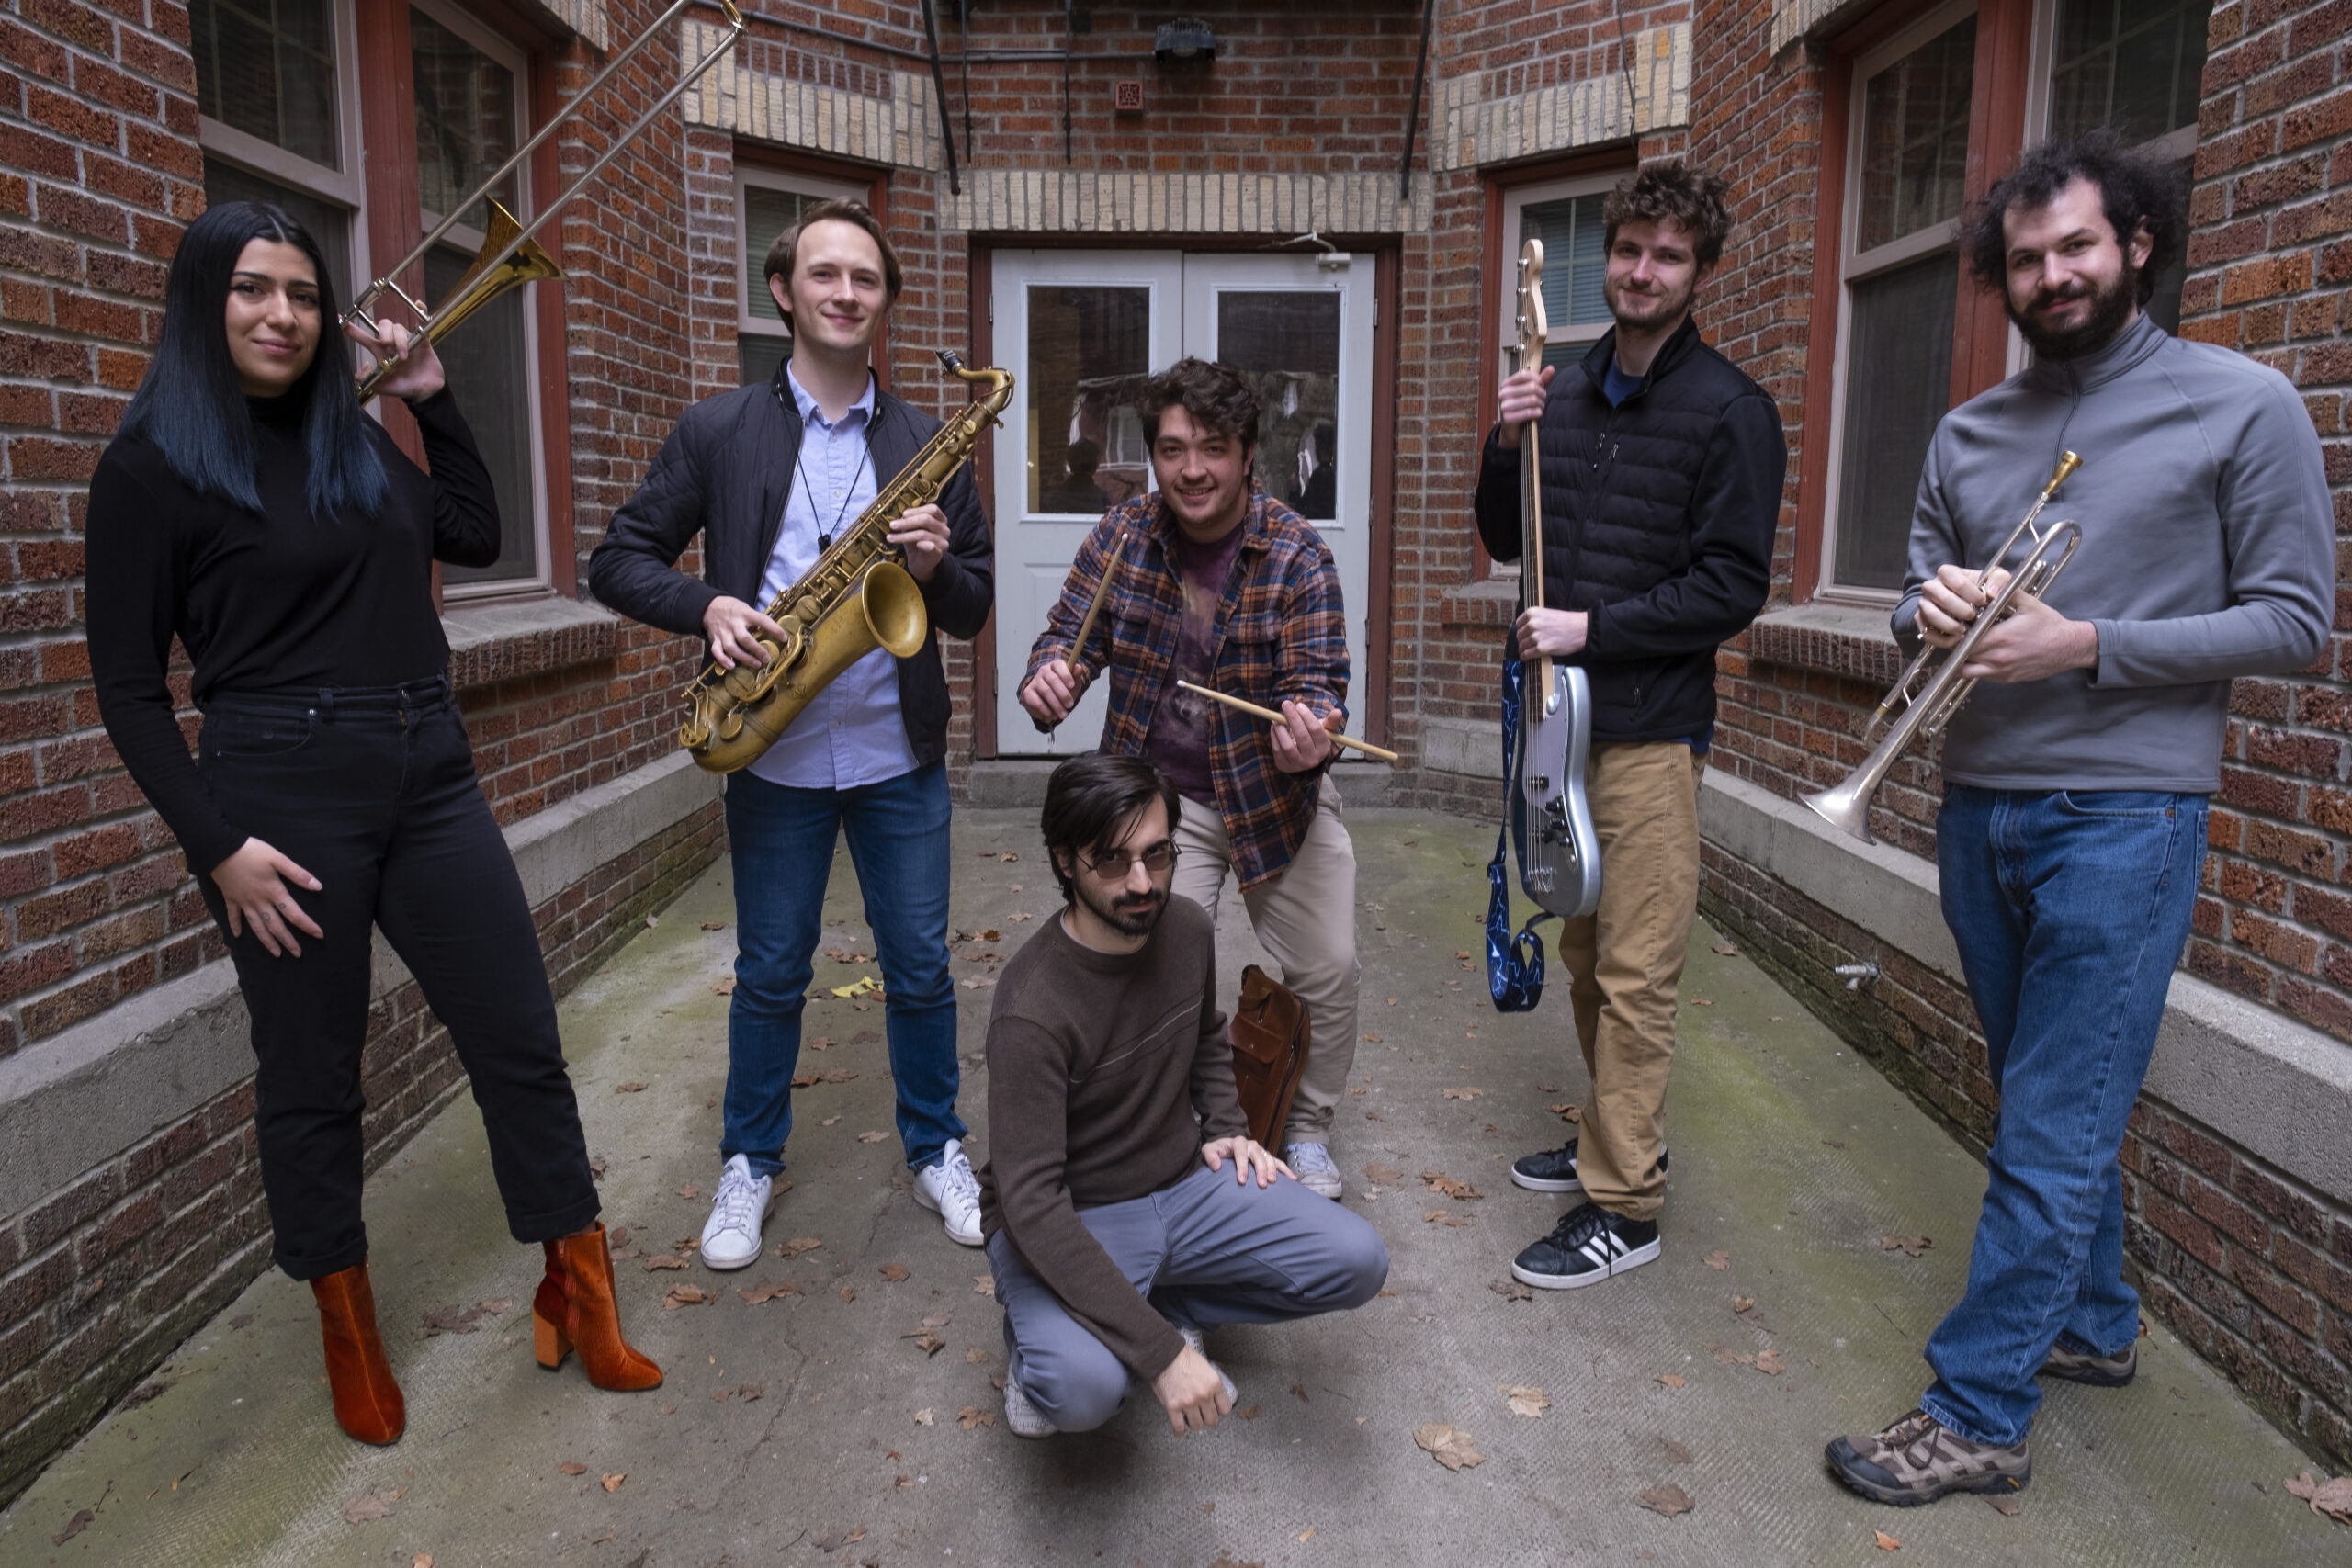 Musicians pose in an alley.